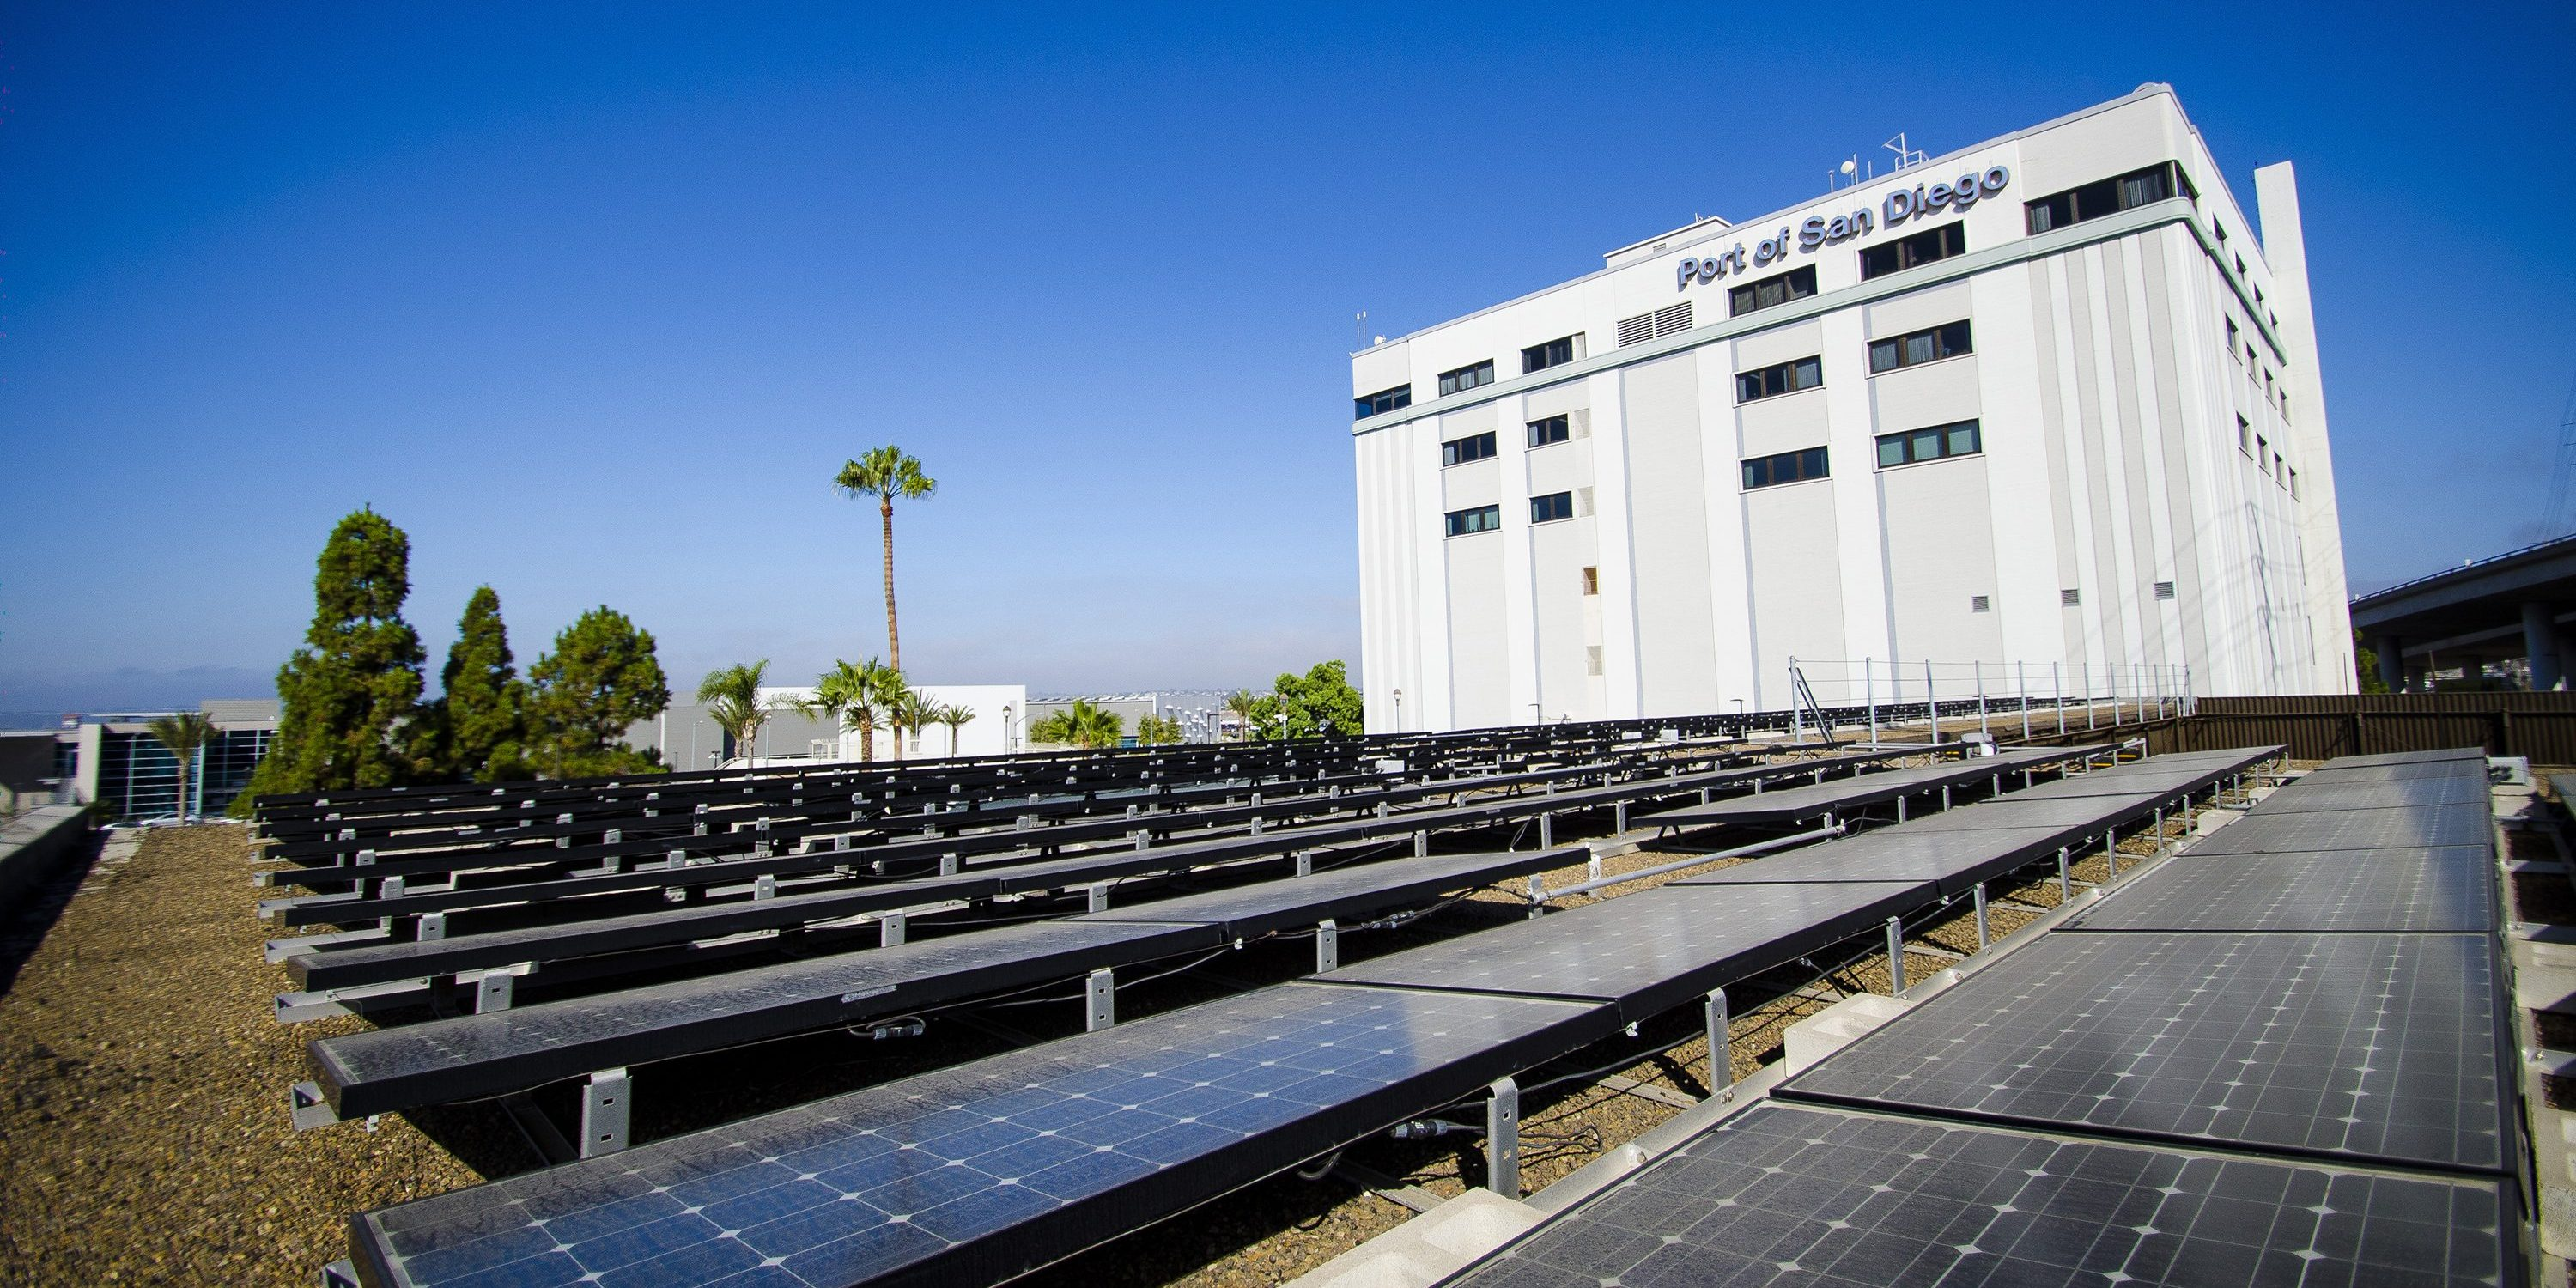 Sdg Amp E And Port Of San Diego Partner On Energy Management